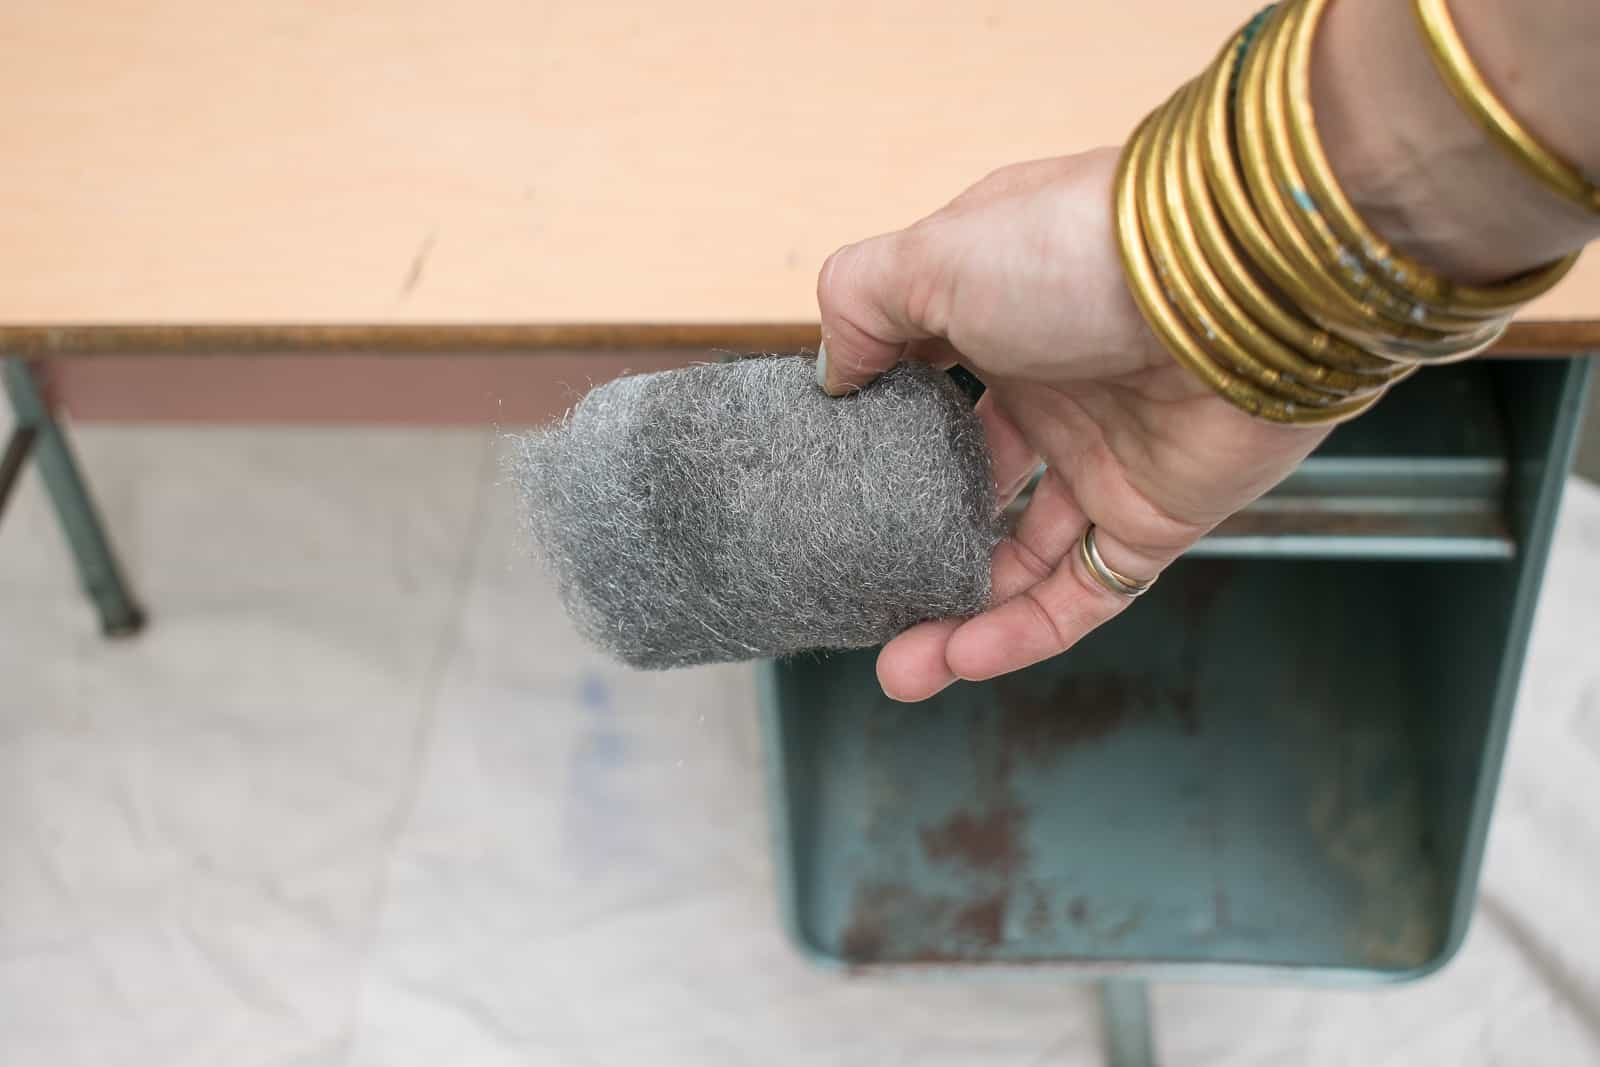 scrub the desk with steel wool